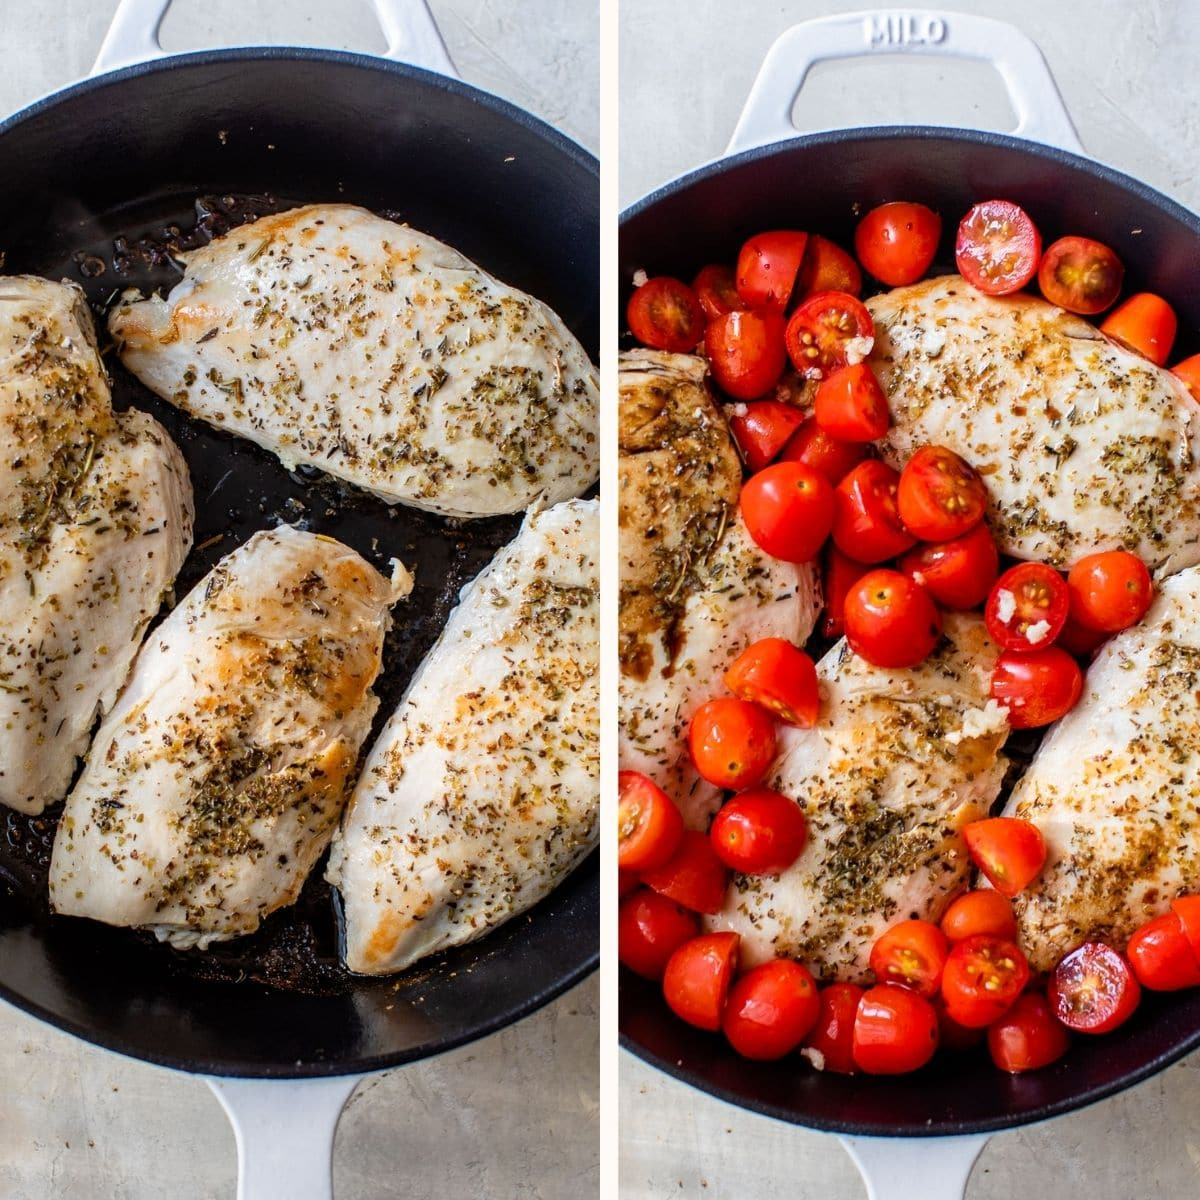 pan-seared chicken breasts in a cast iron skillet